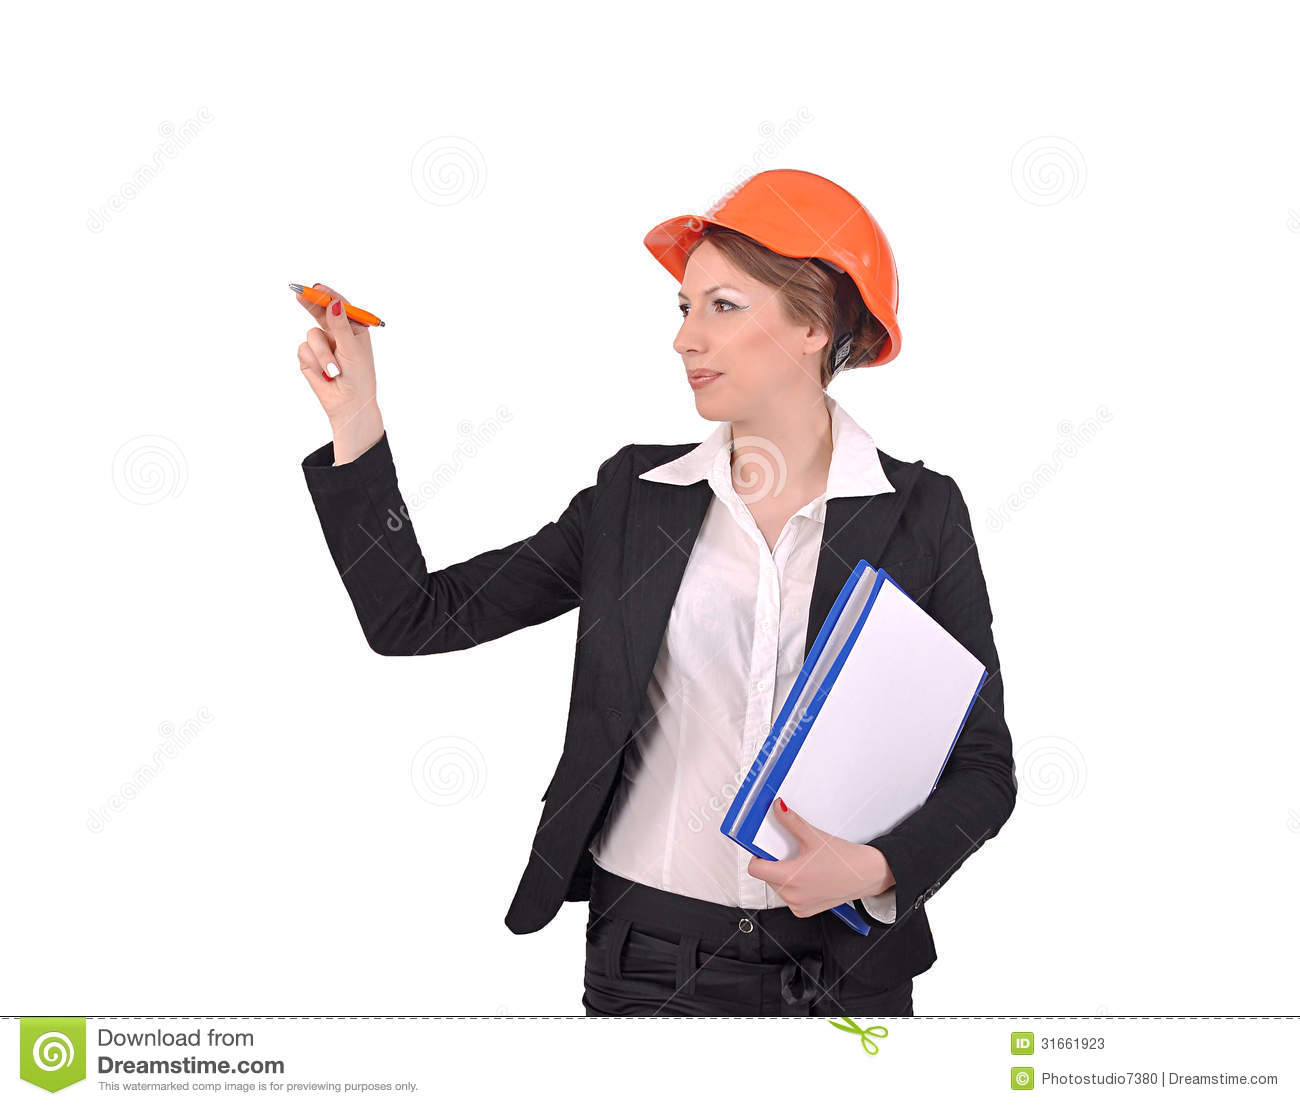 women in construction essays The construction of masculinity and the triad of men's violence michael  kaufman the all too familiar story: a woman raped, a wife battered, a lover  abused.